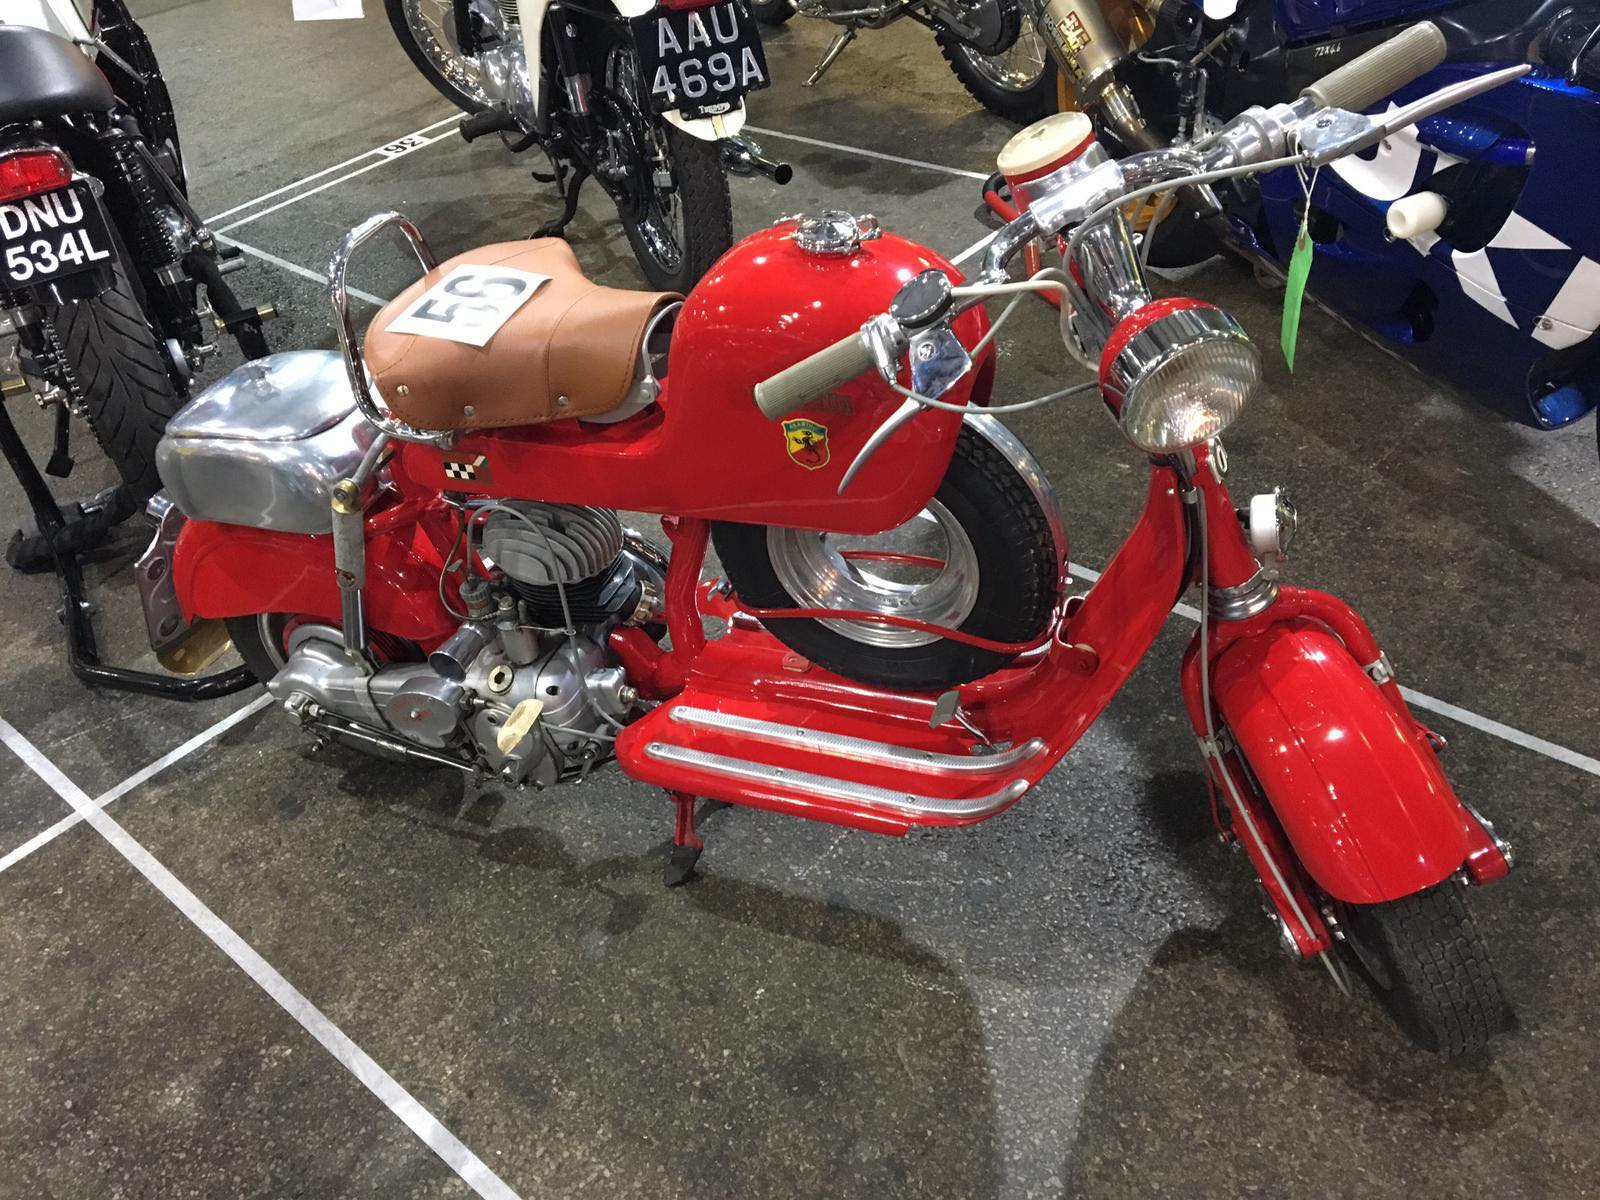 stafford-bike-show.jpg